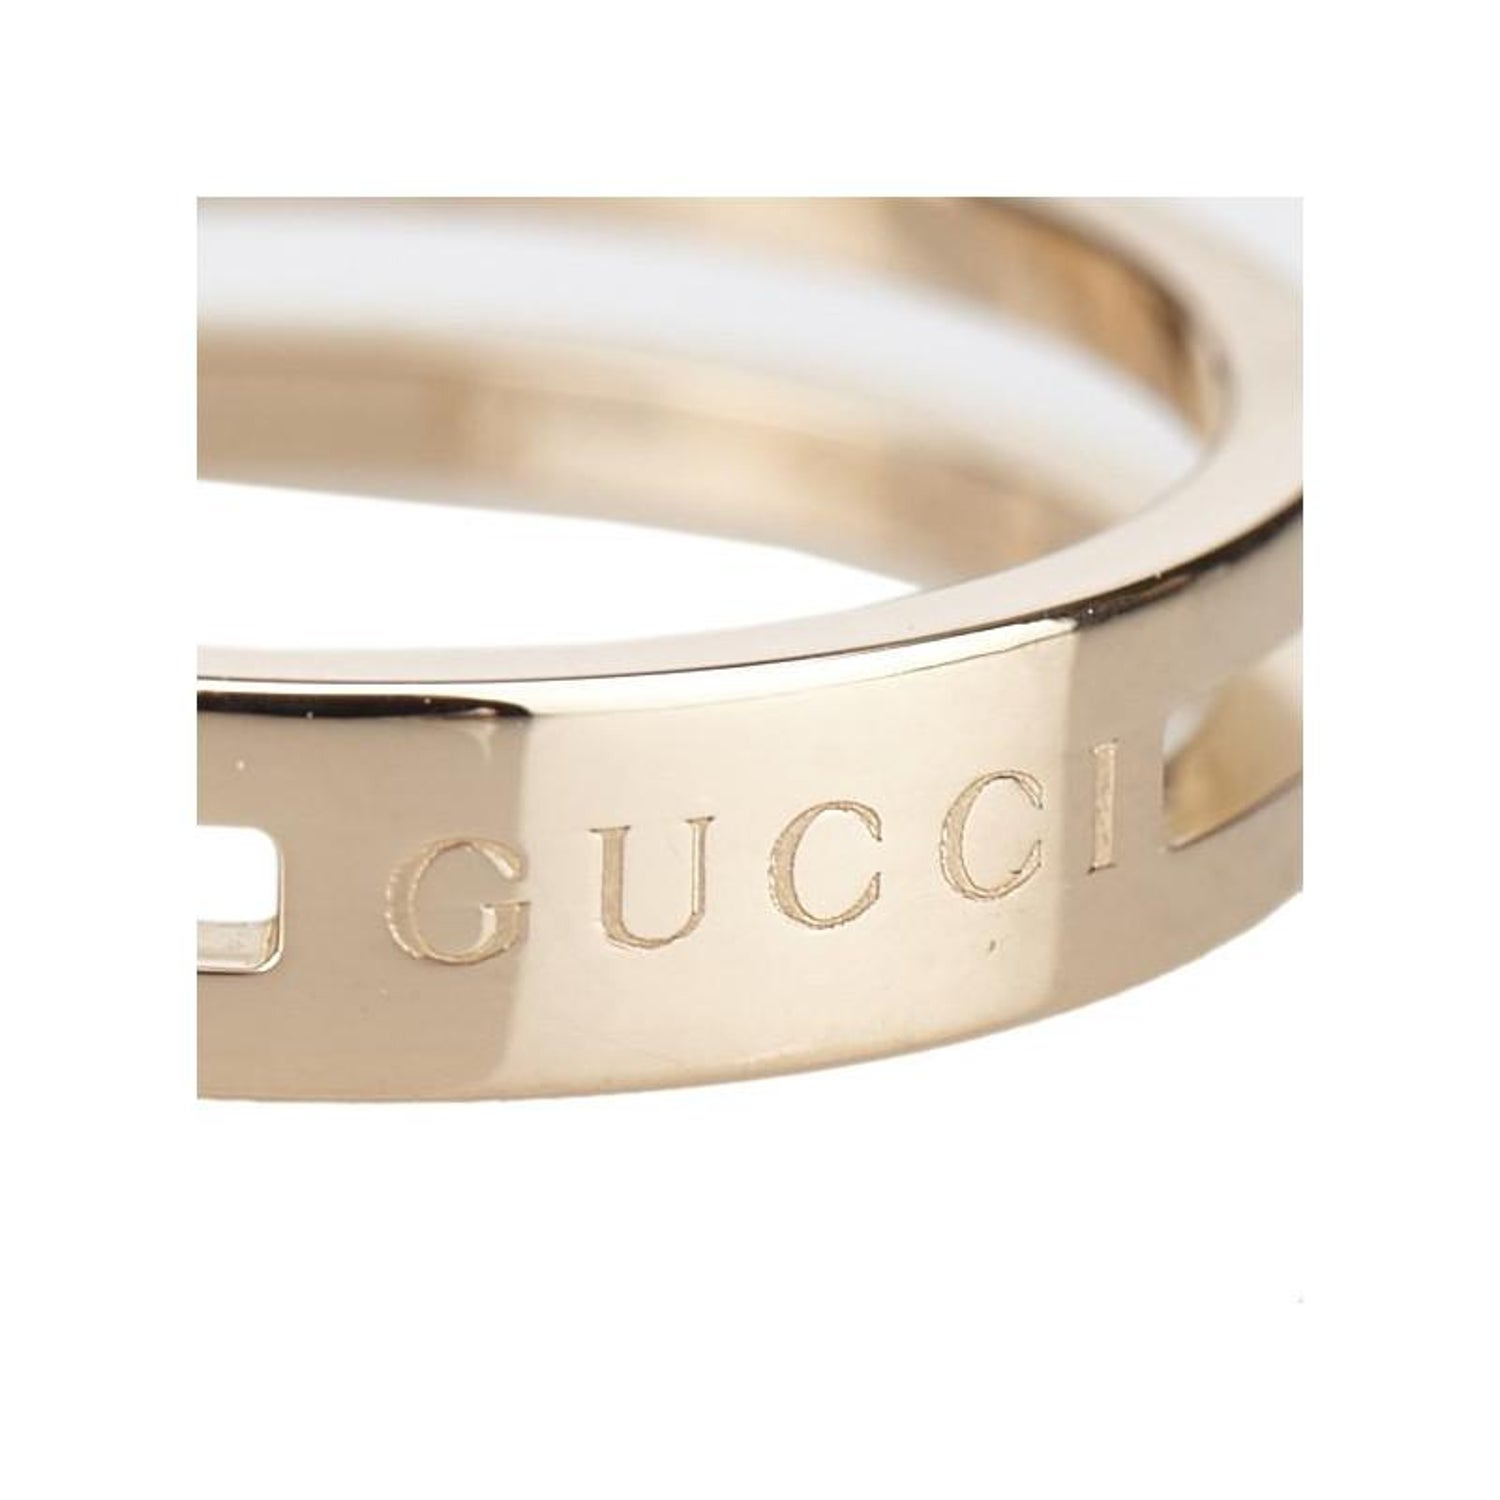 943b65e3e Gucci Infinity Rose Gold Ring Size 52 For Sale at 1stdibs